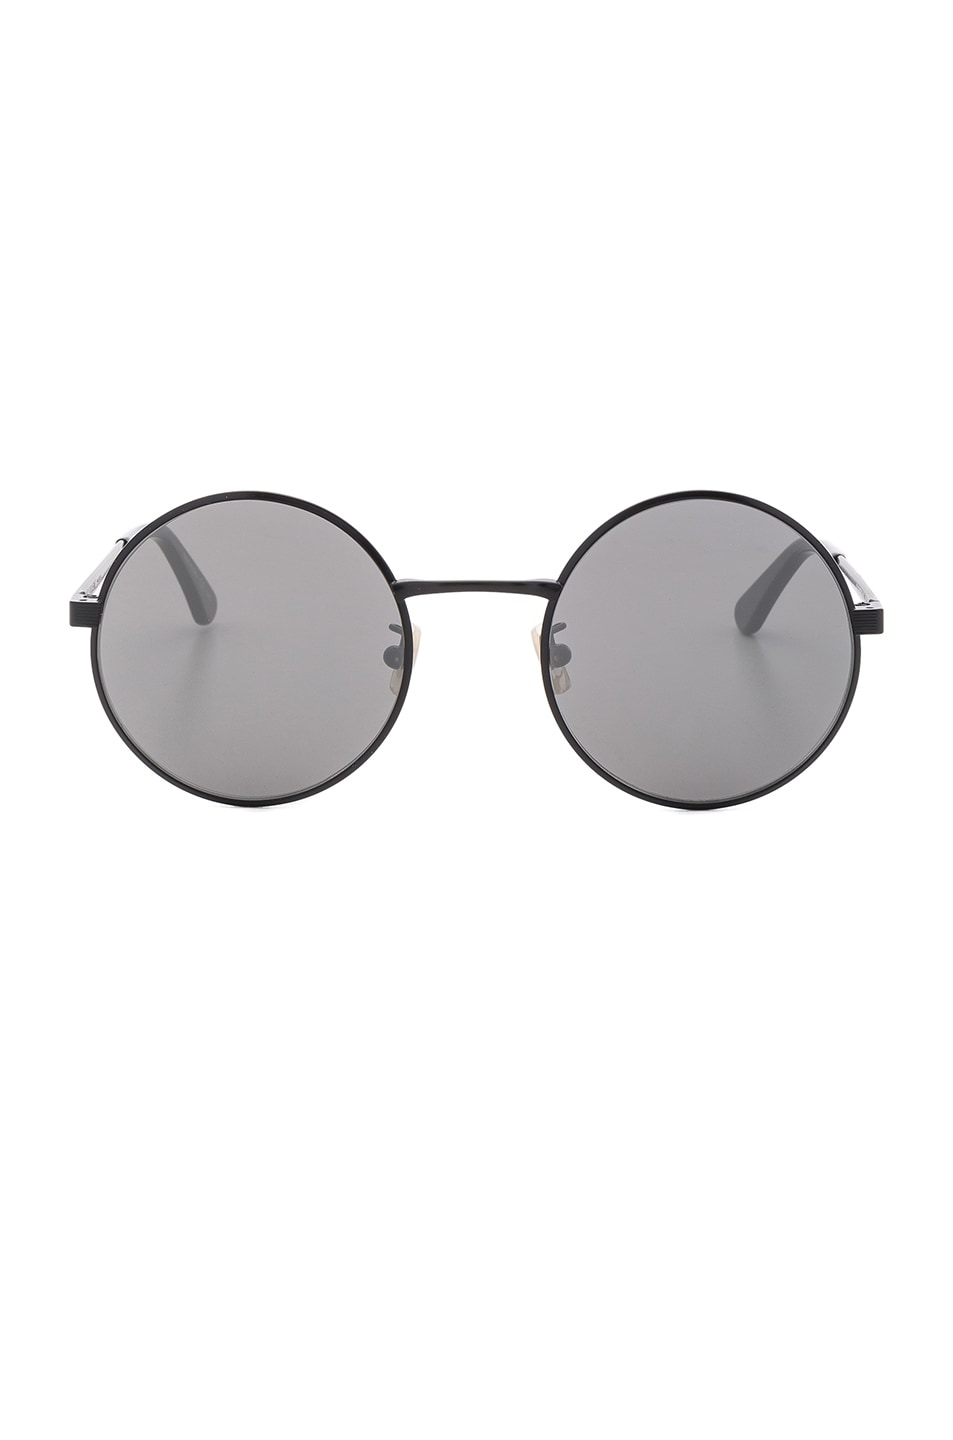 Image 1 of Saint Laurent SL 136 Zero Sunglasses in Matte Black & Silver